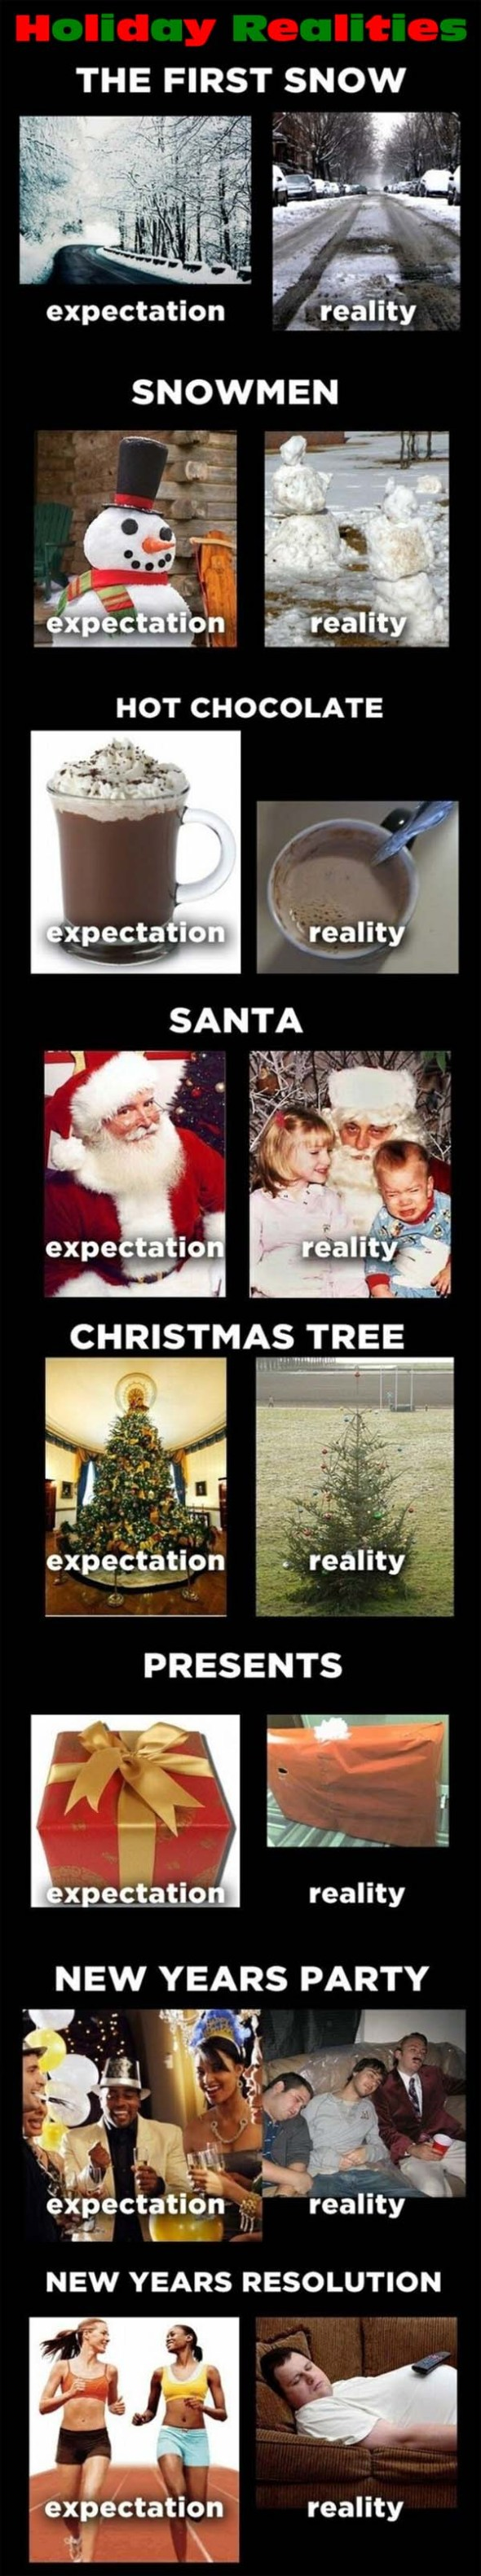 Holiday Expectations and Holiday Realities